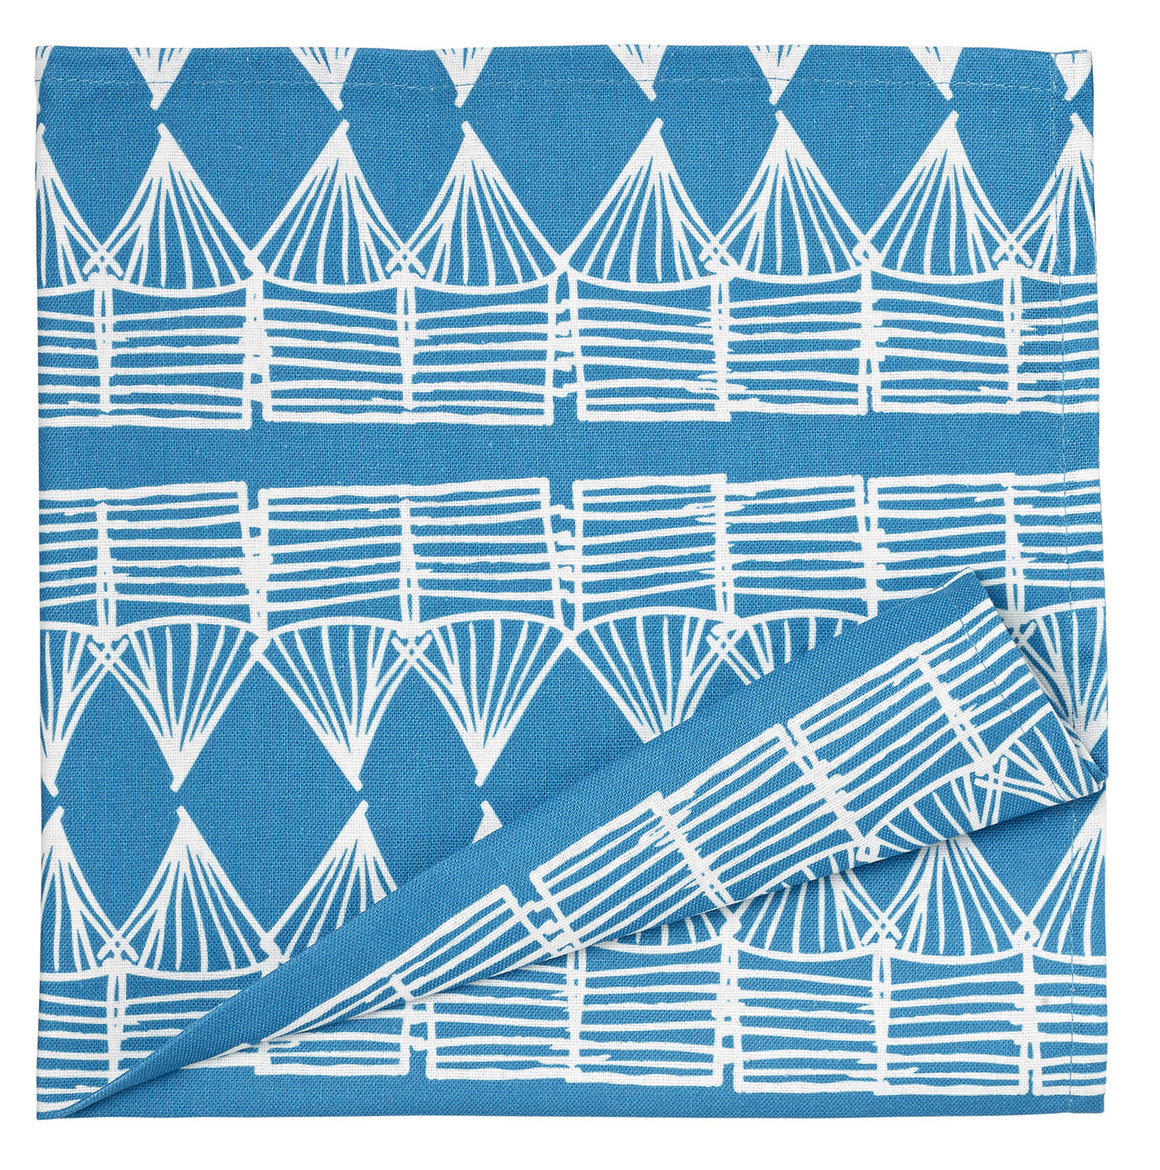 Tiki Huts Patterned Cotton Linen Napkins in Turquoise Blue